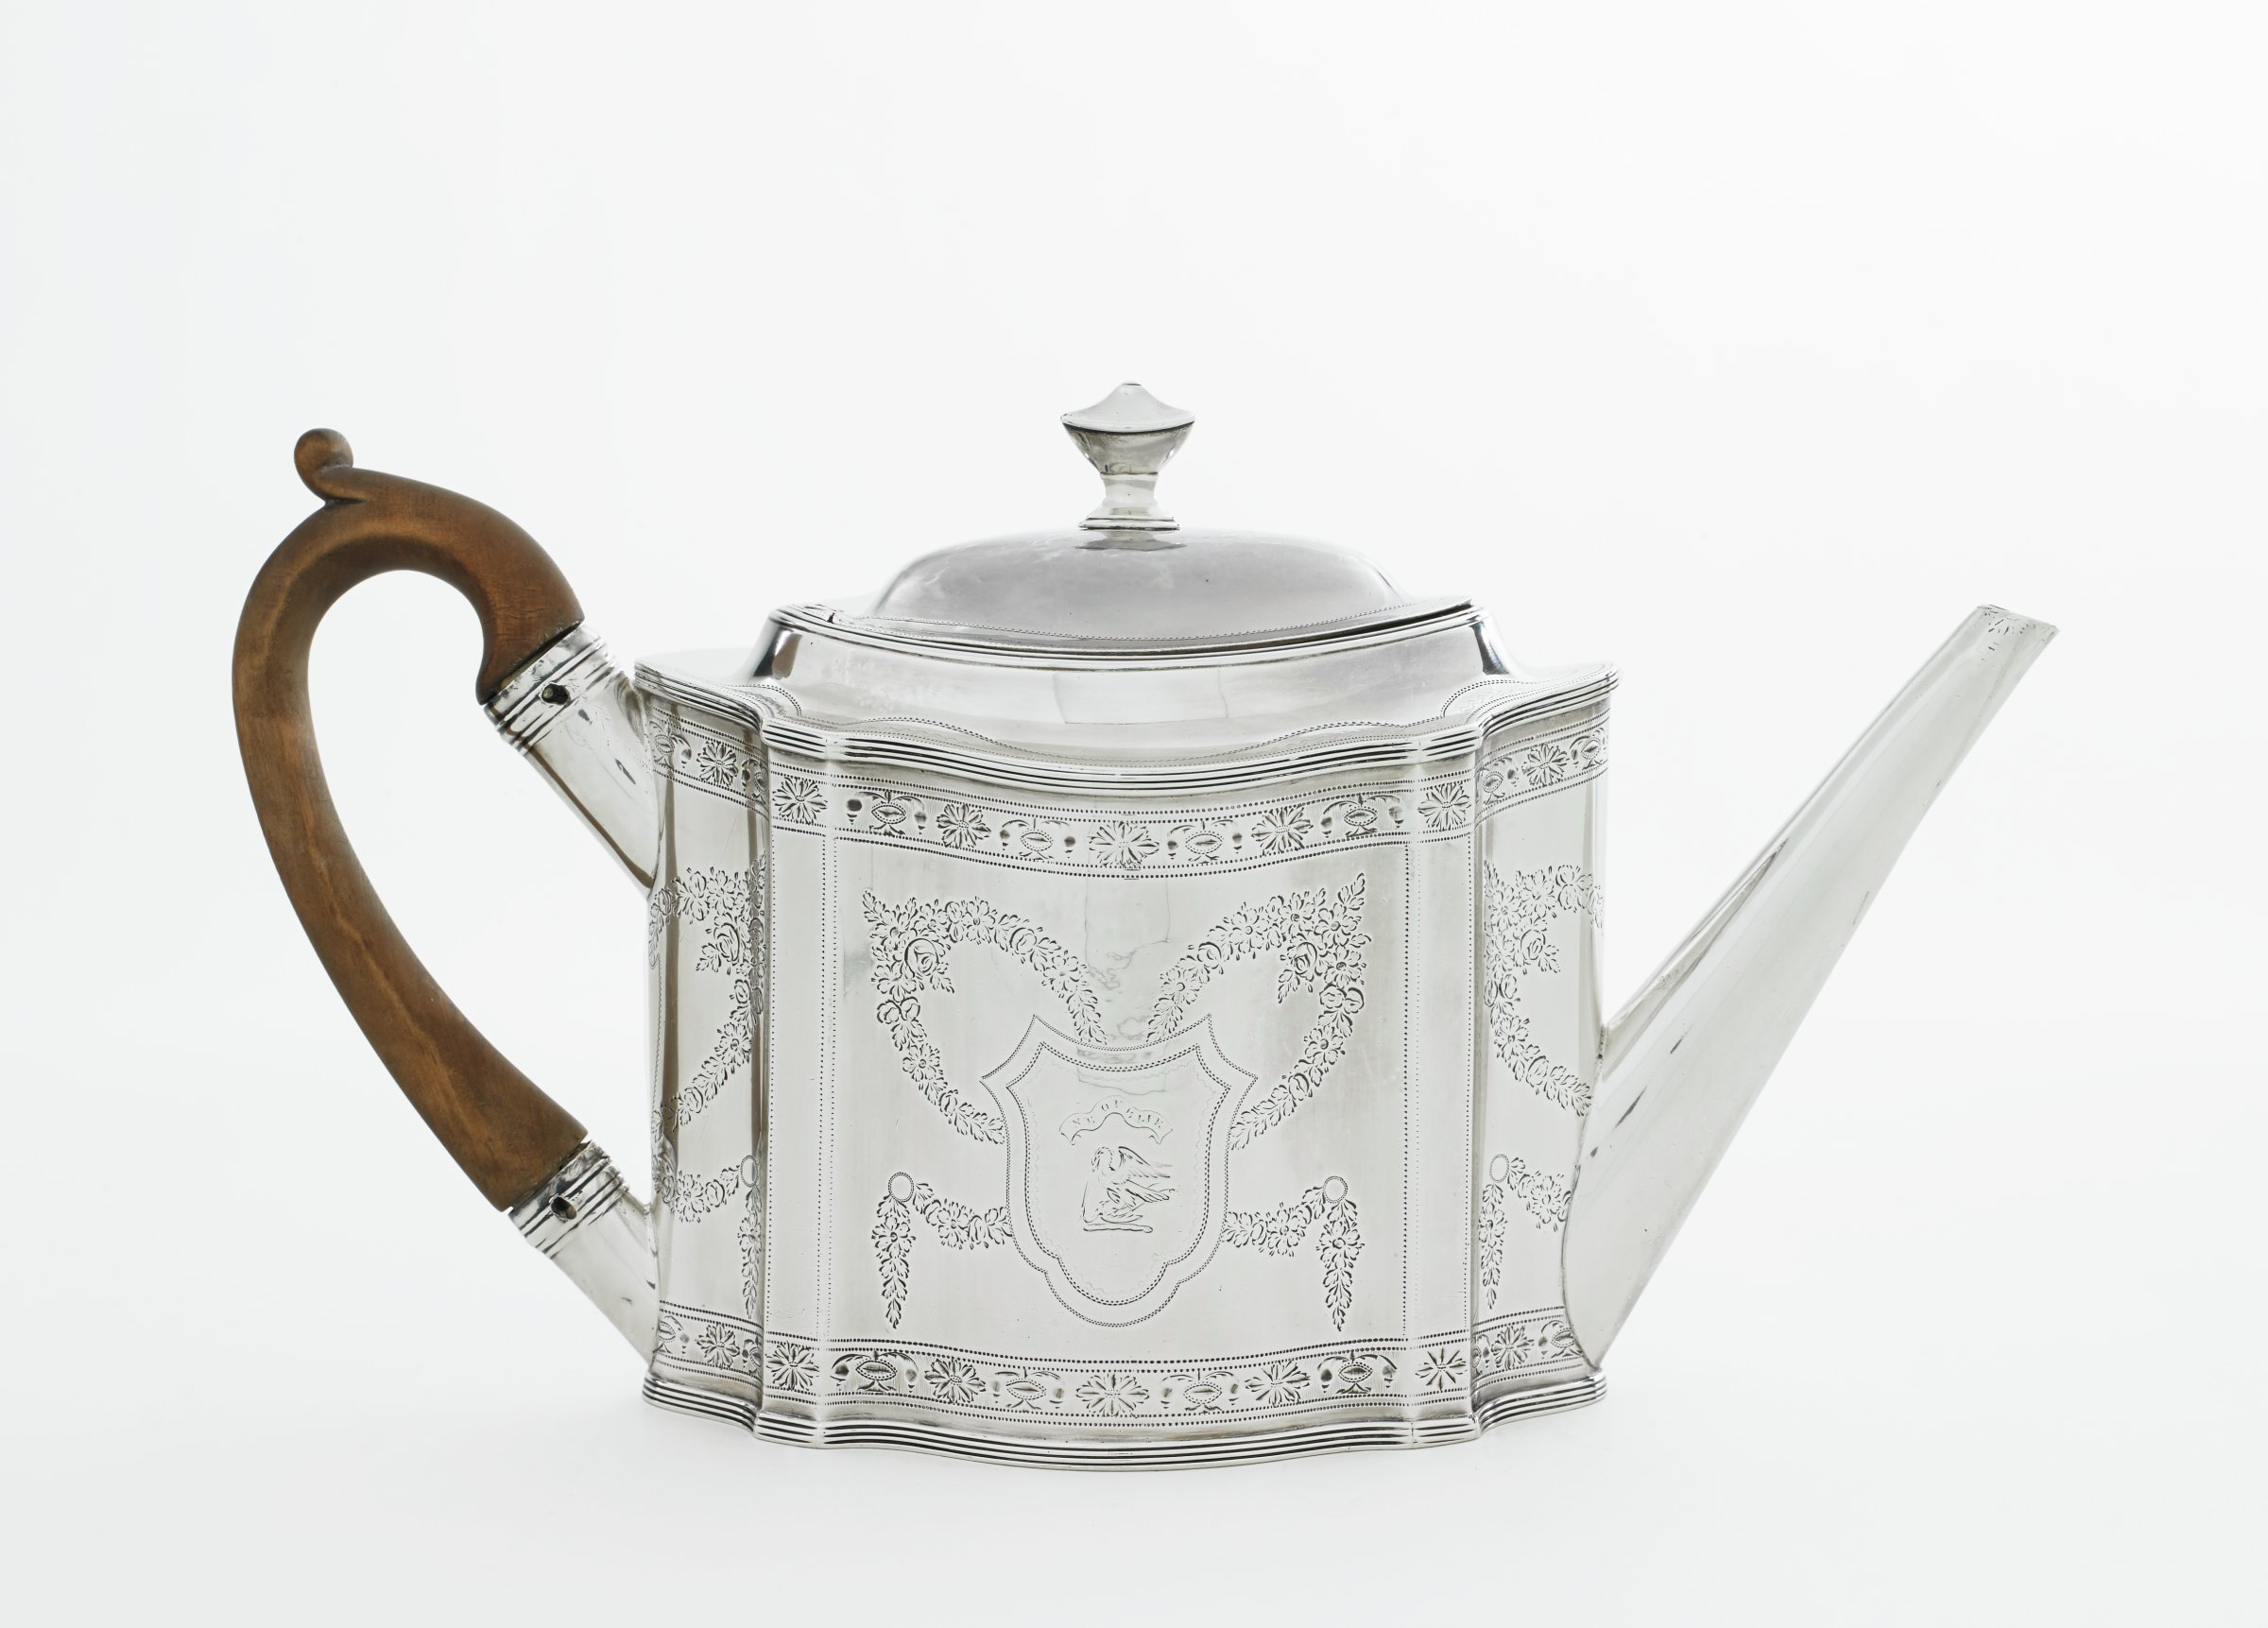 Small oval teapot of sterling silver, the body with serpentine sides, a flat shoulder and raised neck into which fits the domed cover with a finial in the shape of a covered urn, the spout is long and straight, the ear-shaped handle of teakwood with a slightly scrolled thumb rest, the sides are decorated with bright-cut engraving in a pattern of floral garlands surrounding a central shield with on one side a bird with outstretched wings below a banner, the other shield empty, the upper and lower body decorated with a band of stylized floral elements.